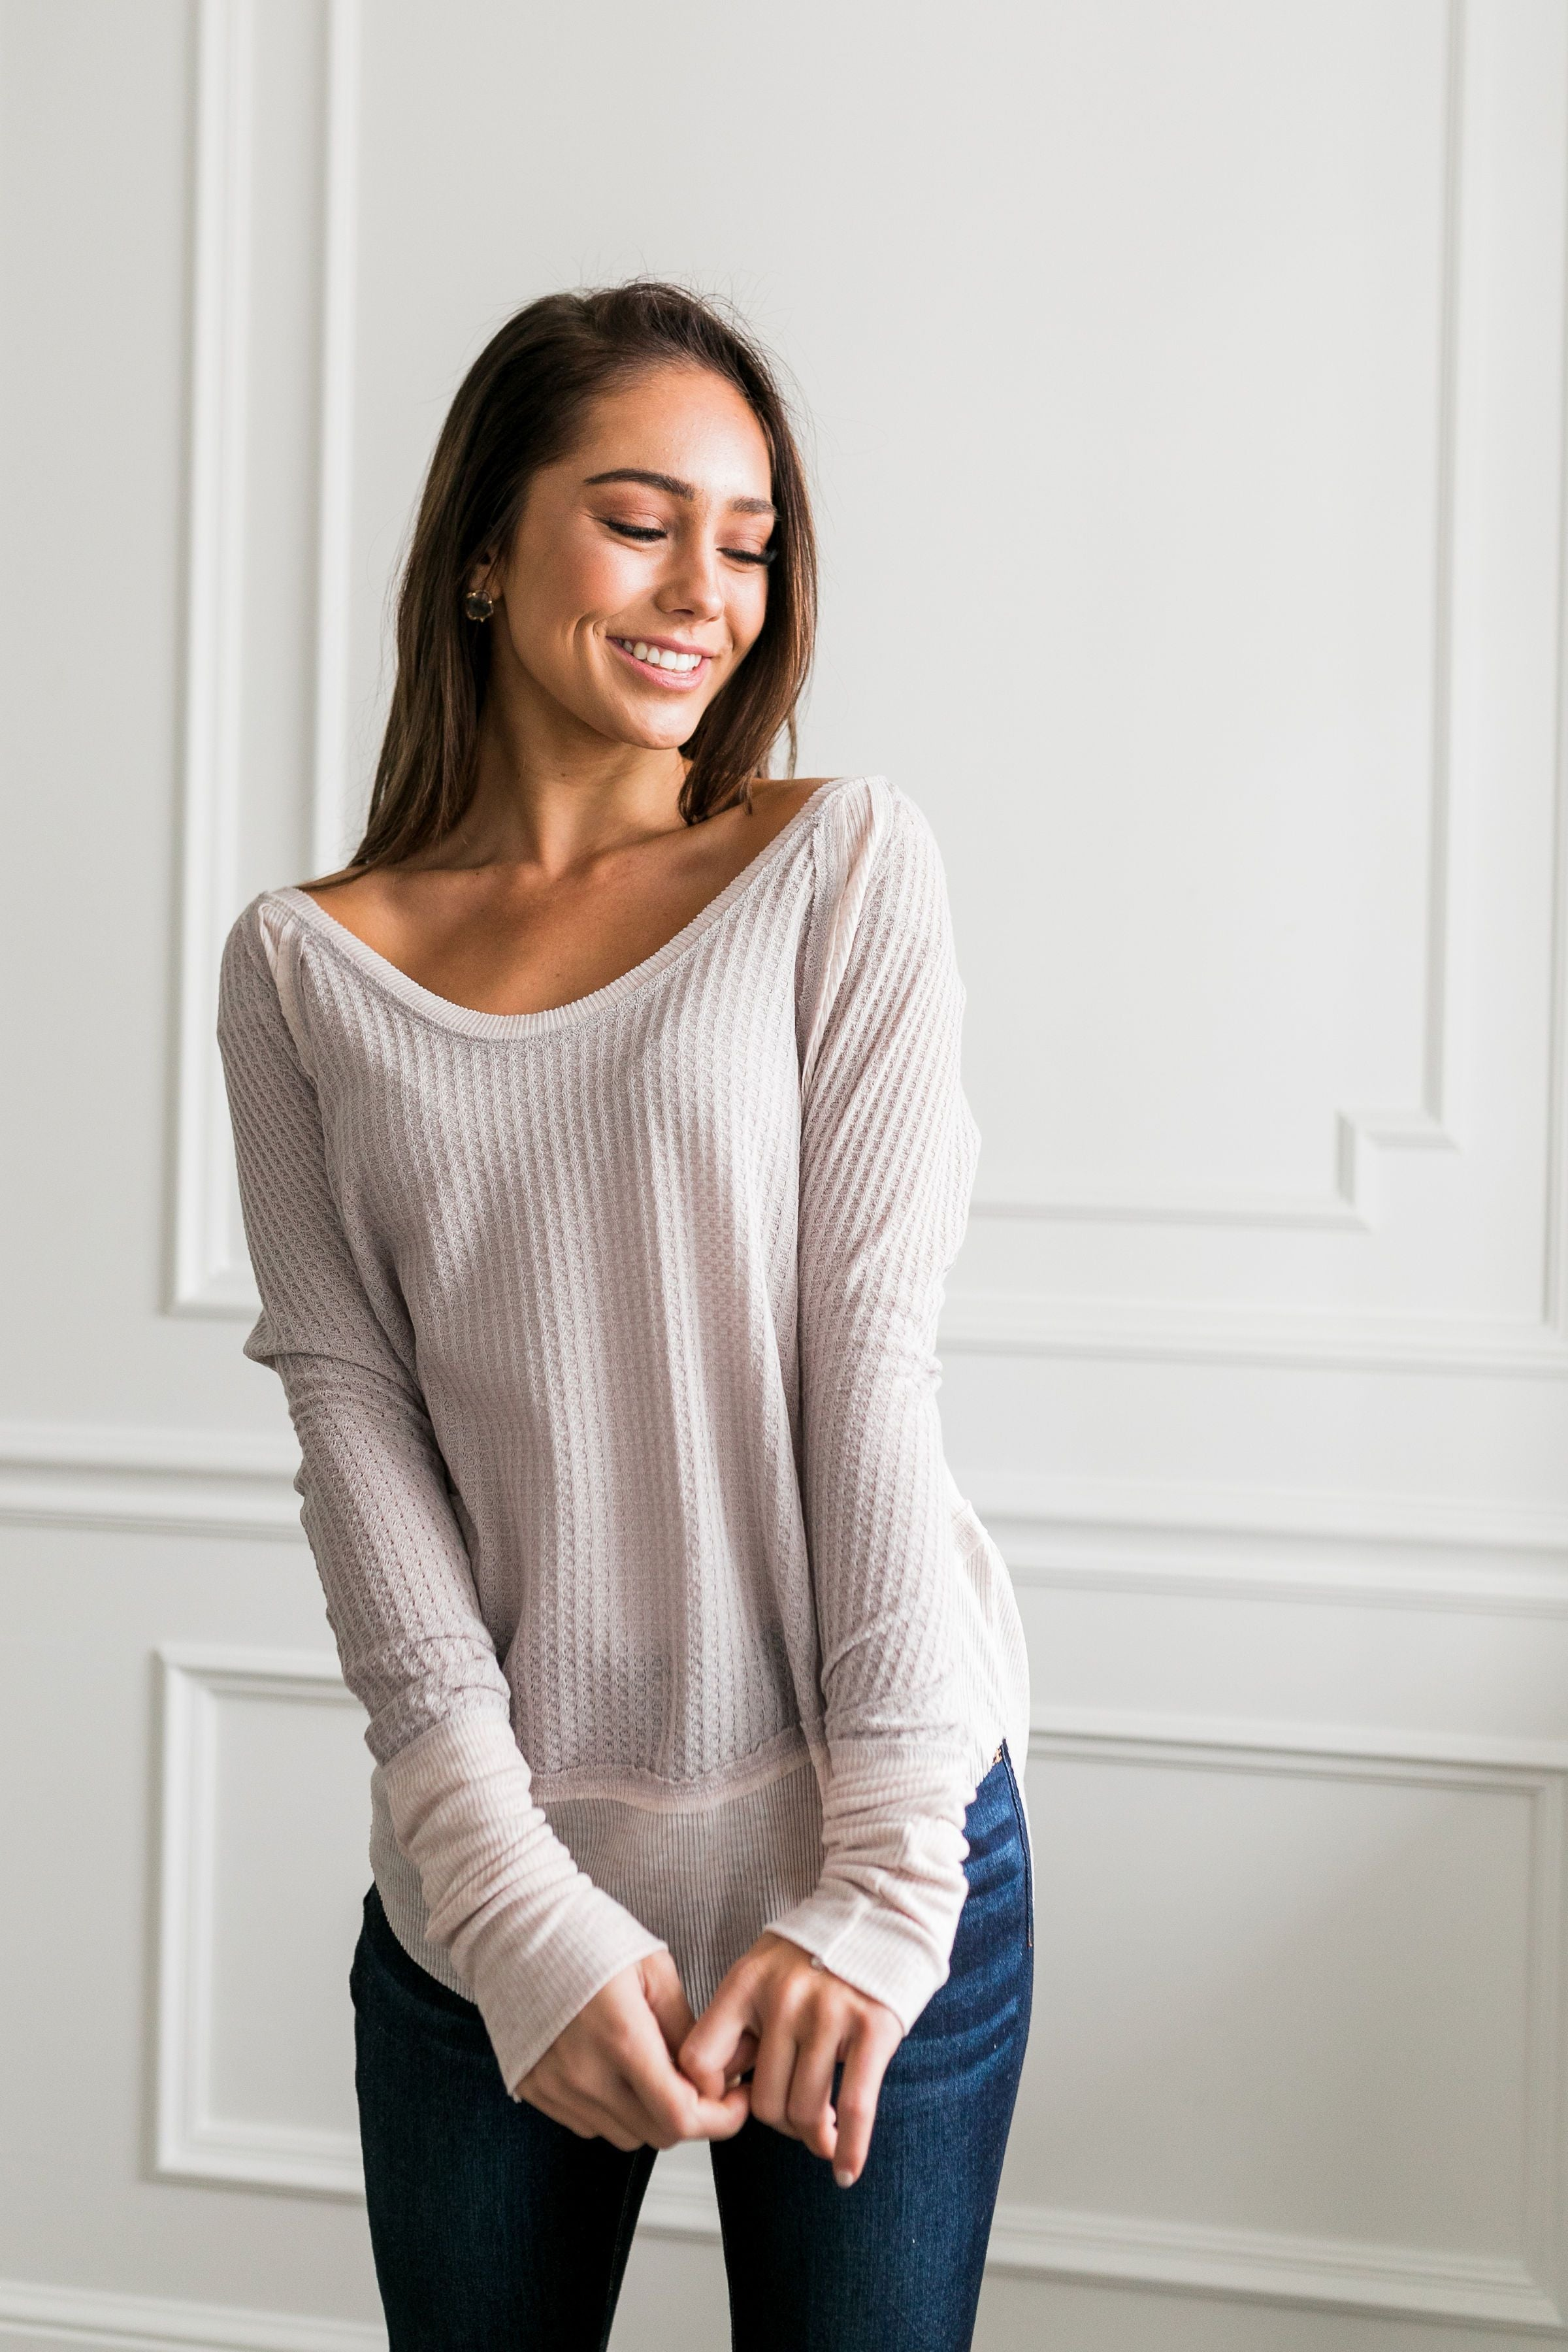 Easy Breezy Beautiful Layered Tee - ALL SALES FINAL